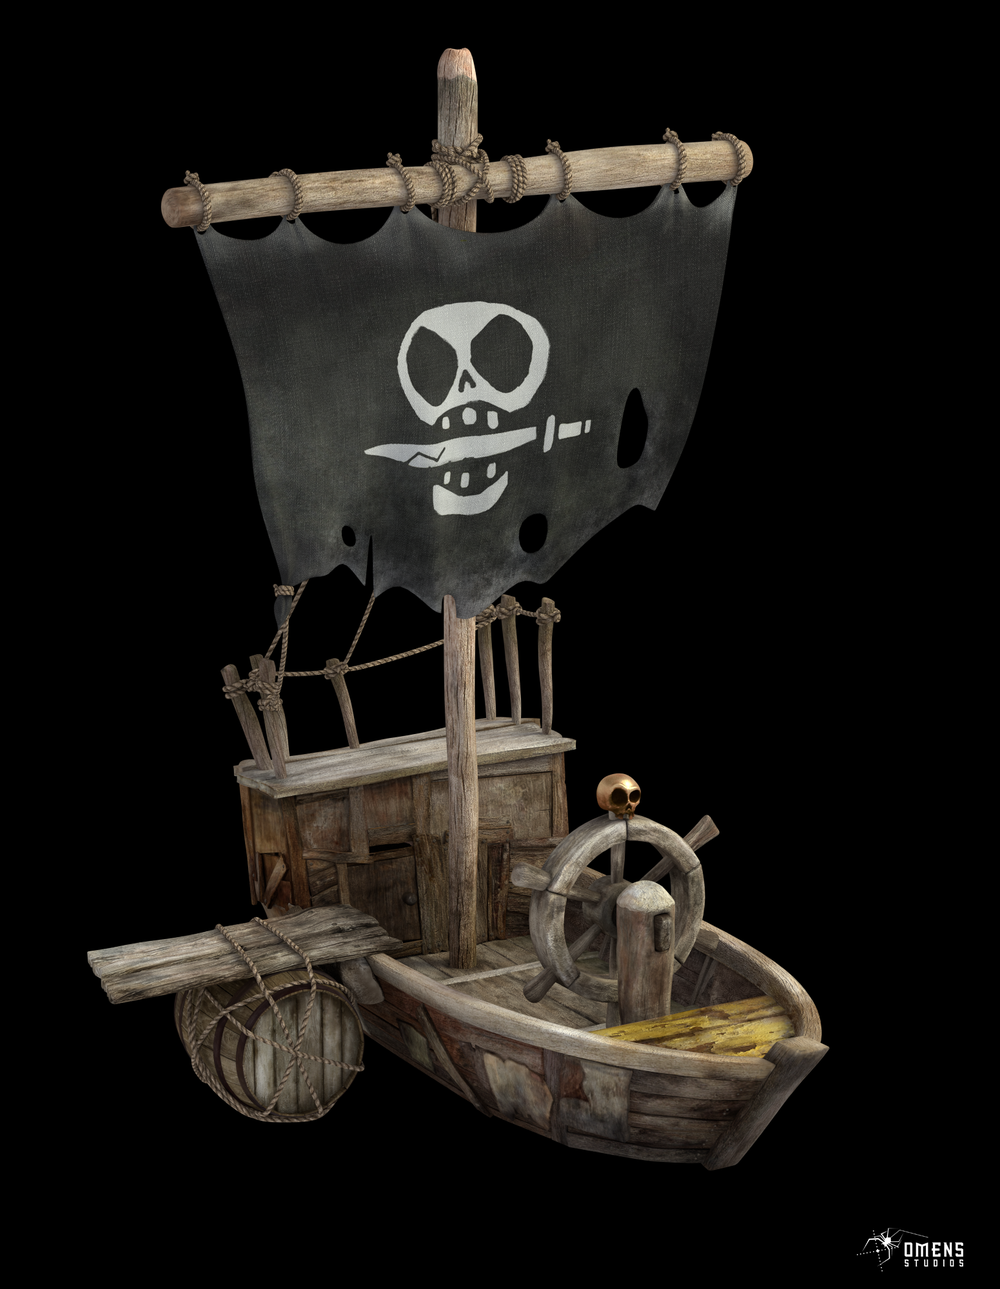 And I also textured majority of the boat. It was fun. Blender is awesome.